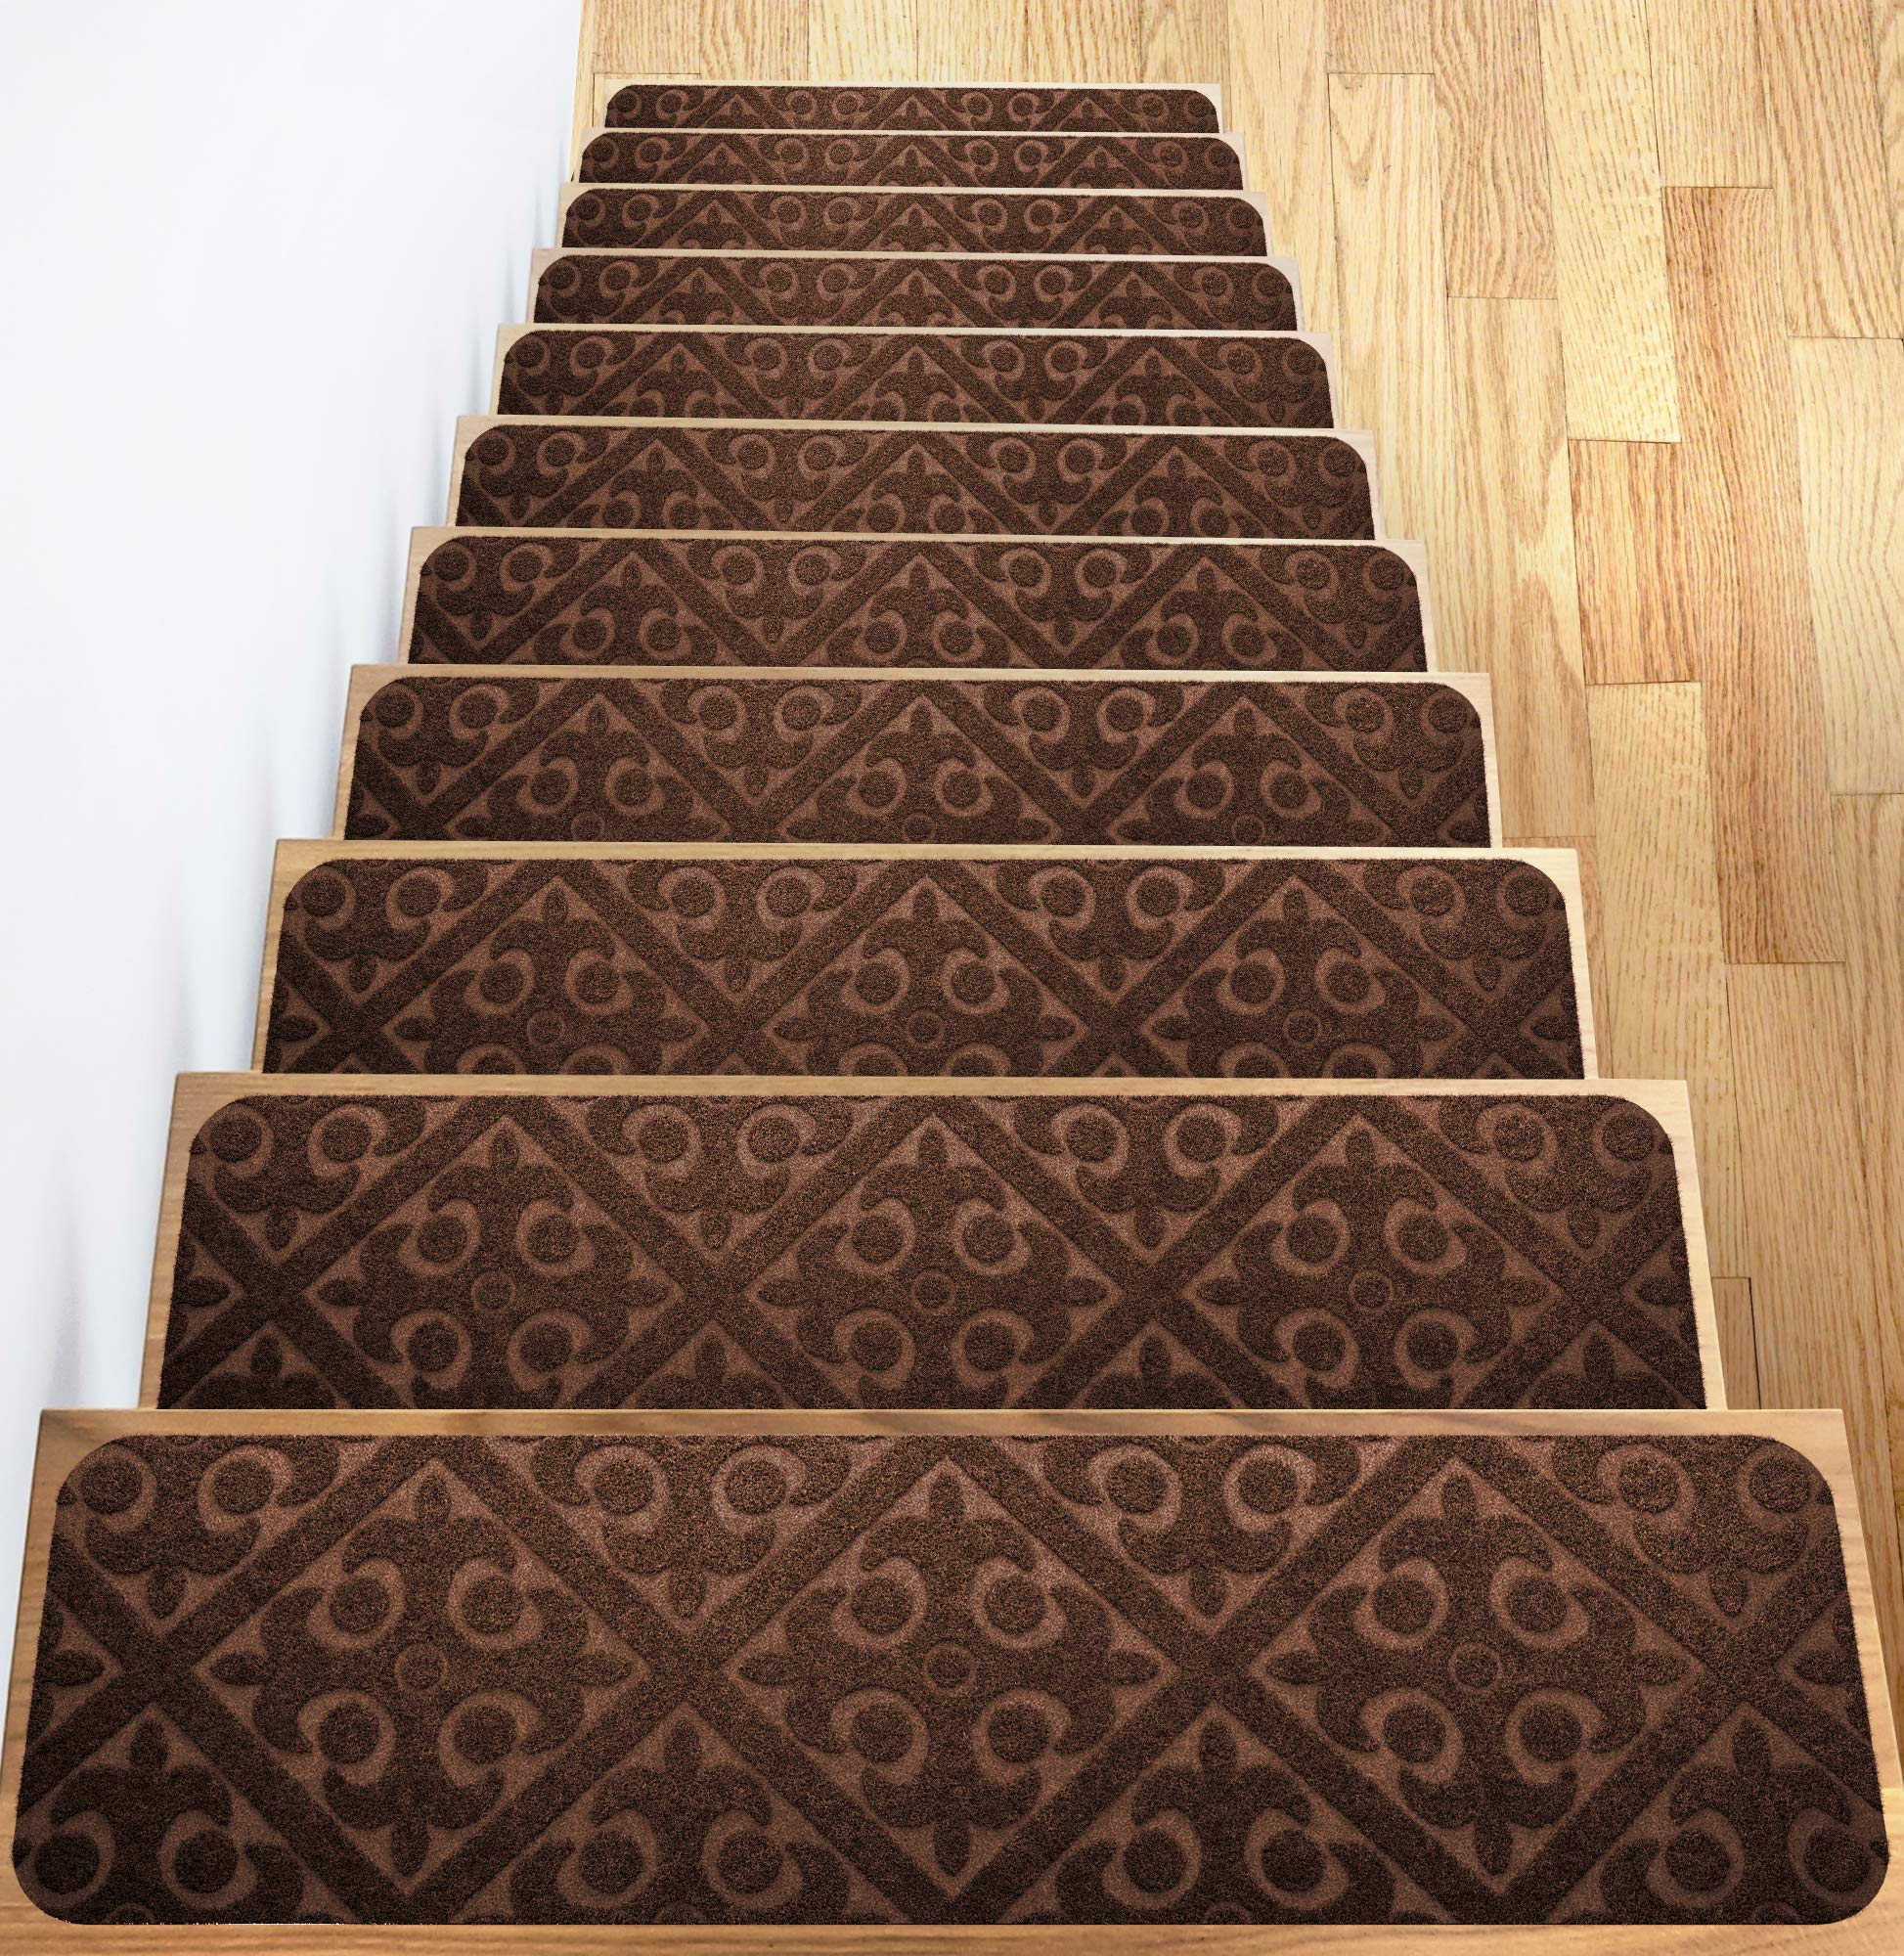 Elogio Carpet Stair Treads Set of 13 Non Slip/Skid Rubber Runner Mats or Rug Tread - Indoor Outdoor Pet Dog Stair Treads Pads - Non-Slip Stairway Carpet Rugs (Brown) 8'' x 30'' Includes Adhesive Tape by Elogio